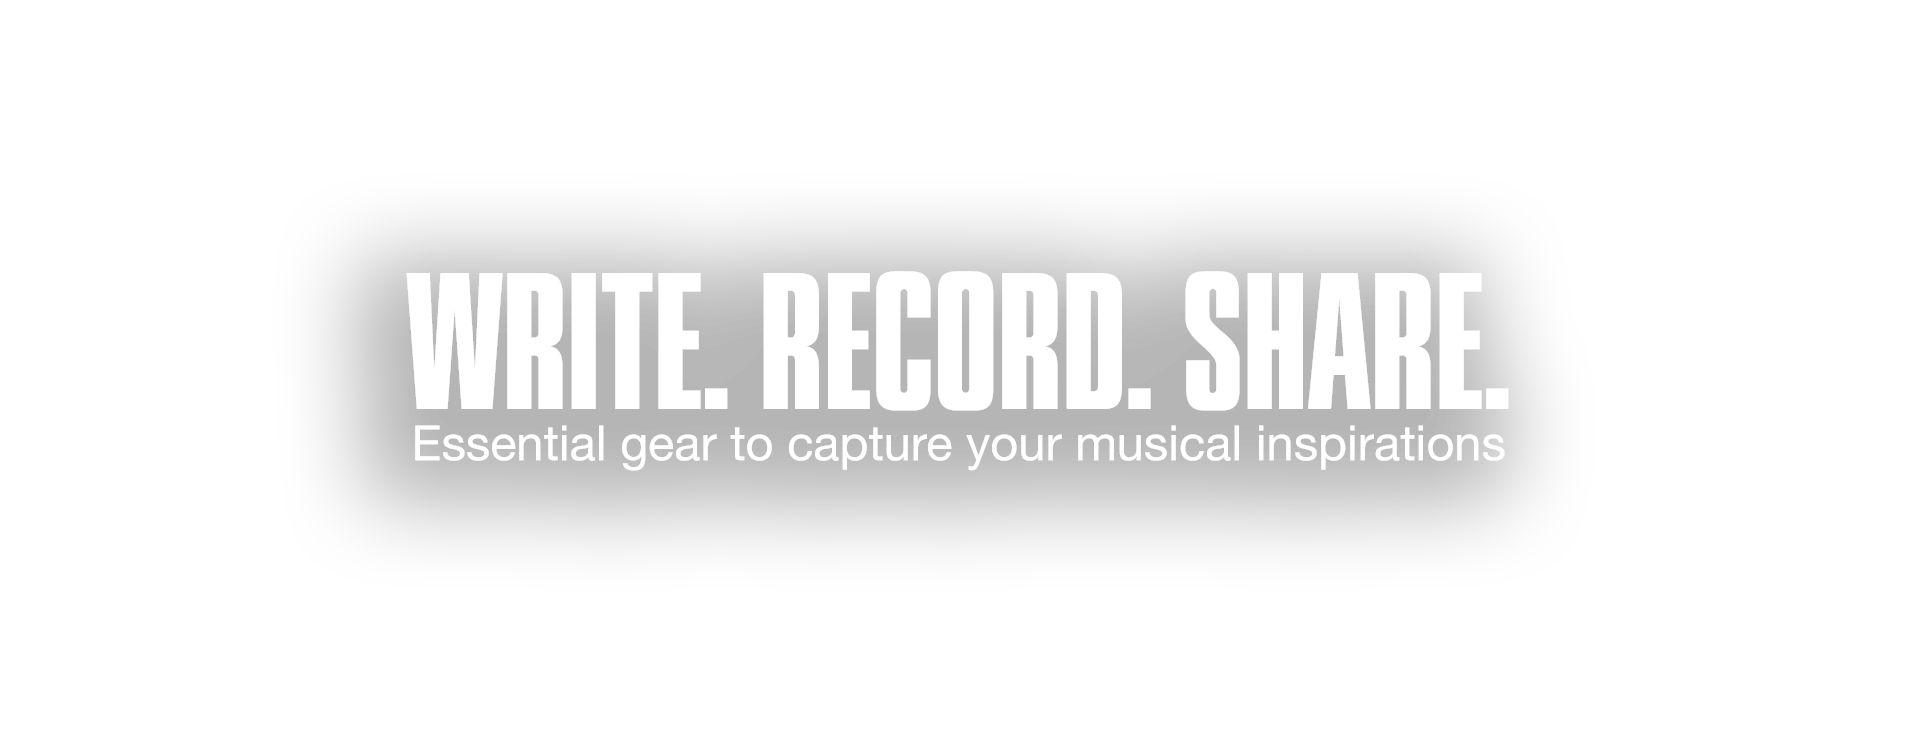 Write. Record. Share. Essential gear to capture your musical inspirations